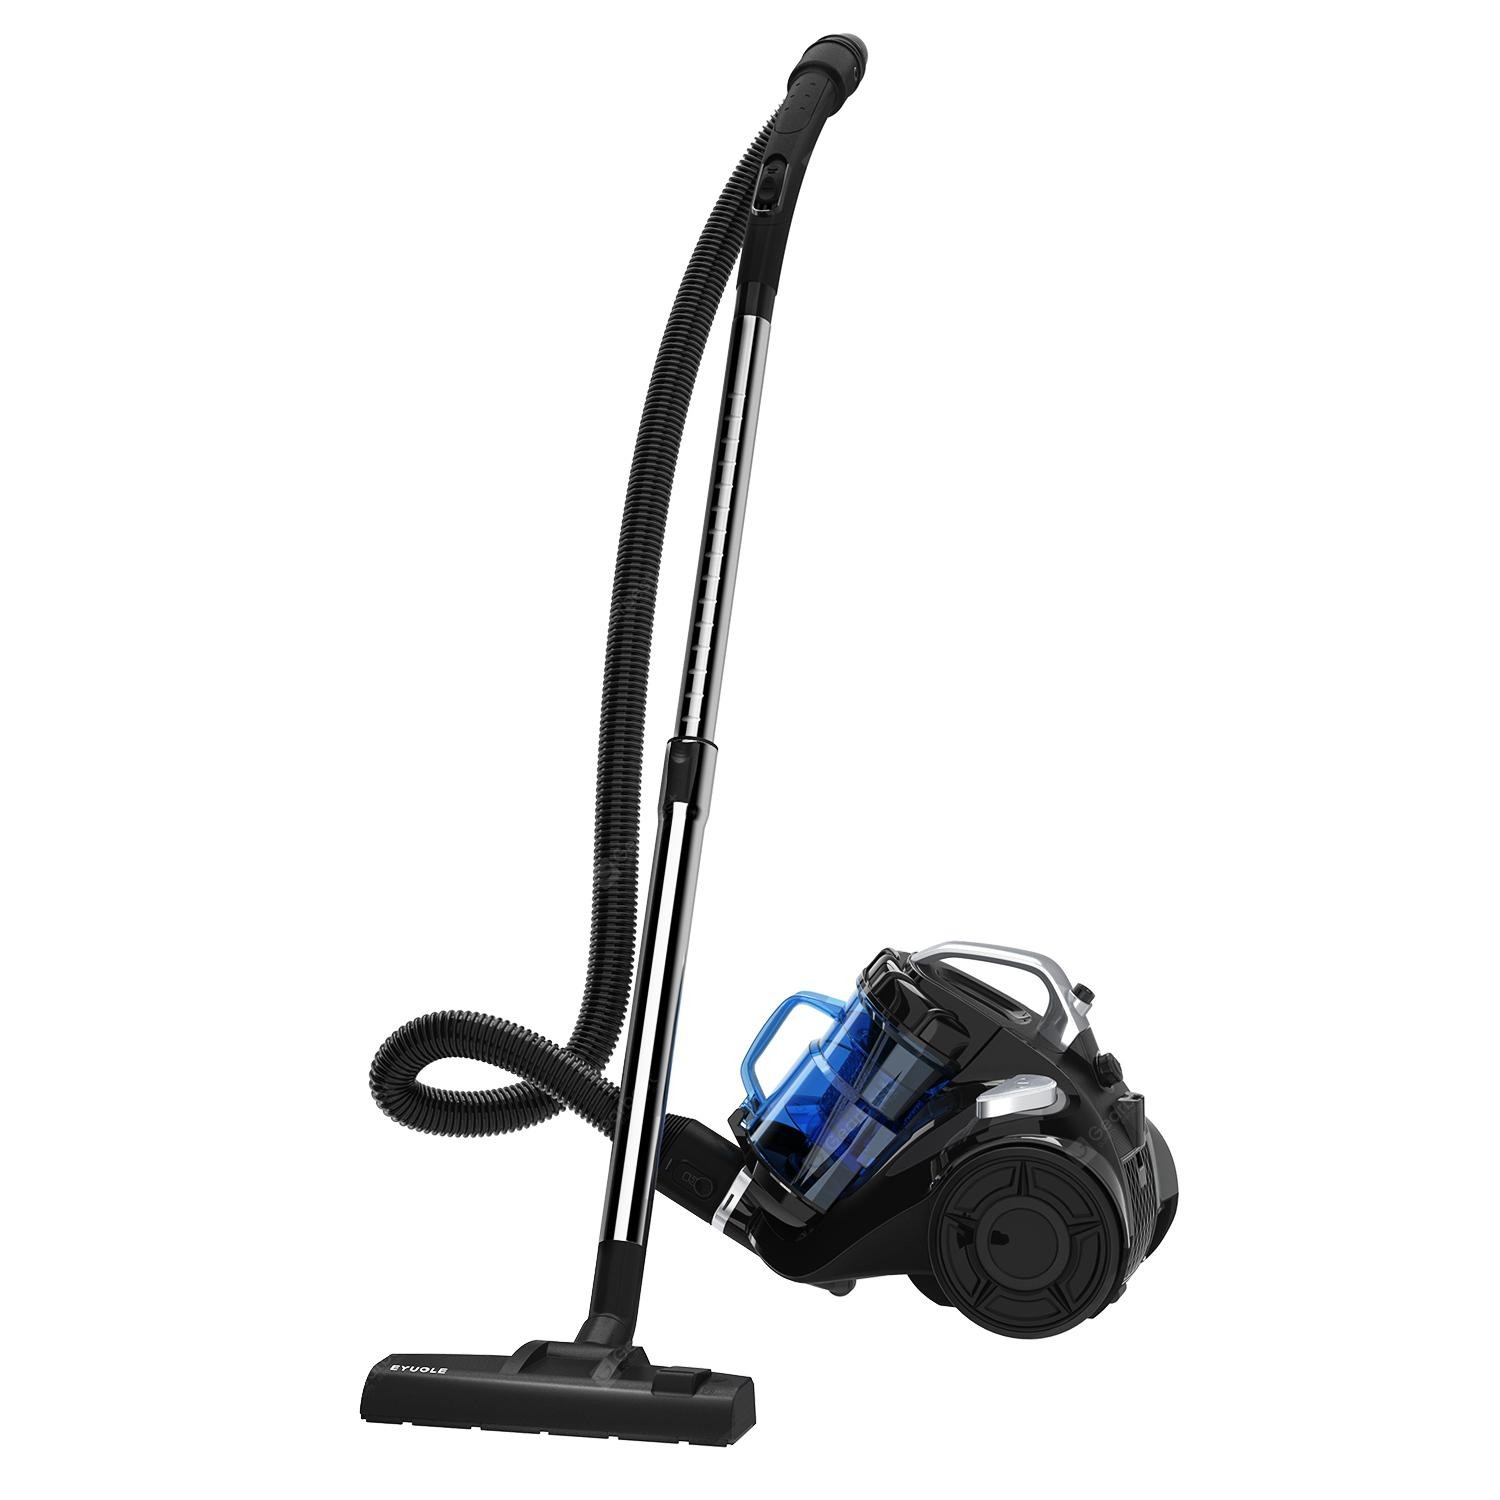 Eyugle VC-1409 Kanister Vacuum Cleaner BAGLESS Berkord Ringan Upright Vacuum Pilih Suction 15Kpa HEPA untuk Binatang bulu Carpet Floor Hard - EU BLACK